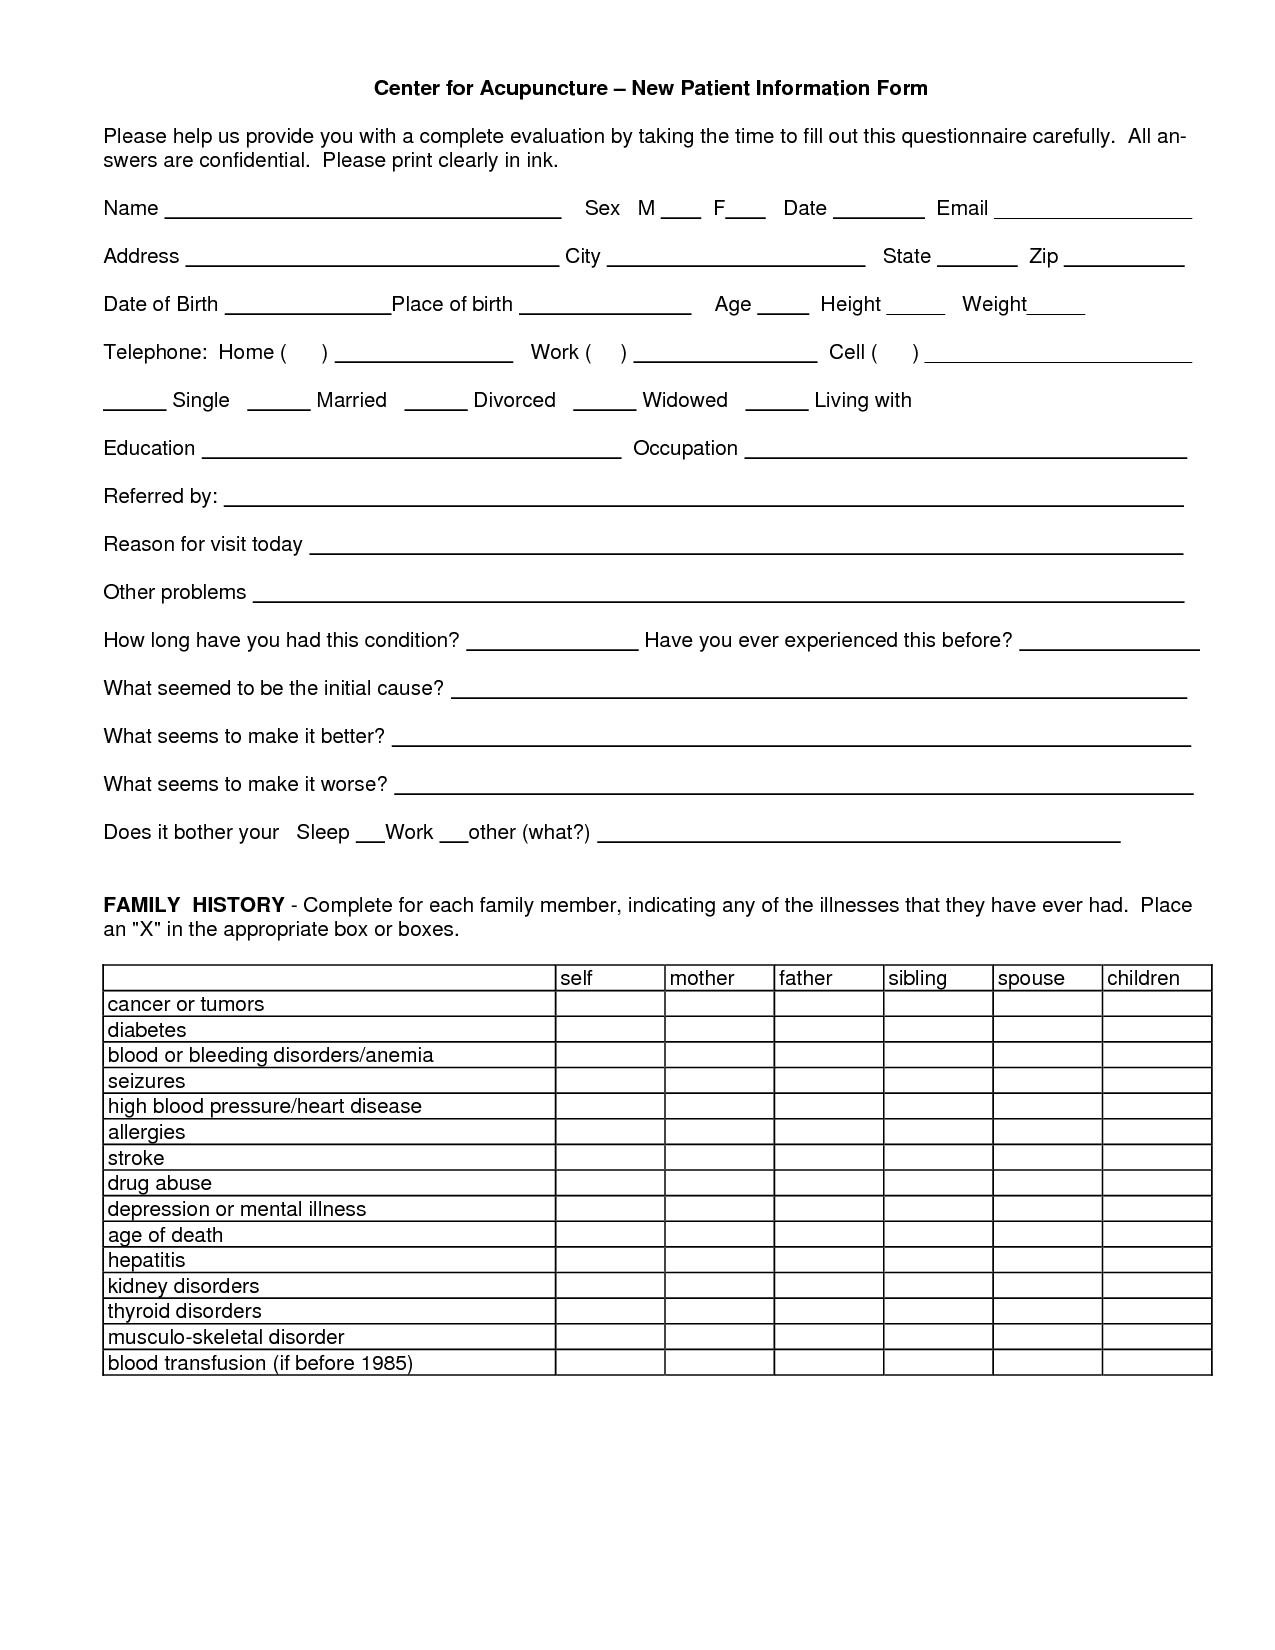 Community Acupuncture Intake Forms